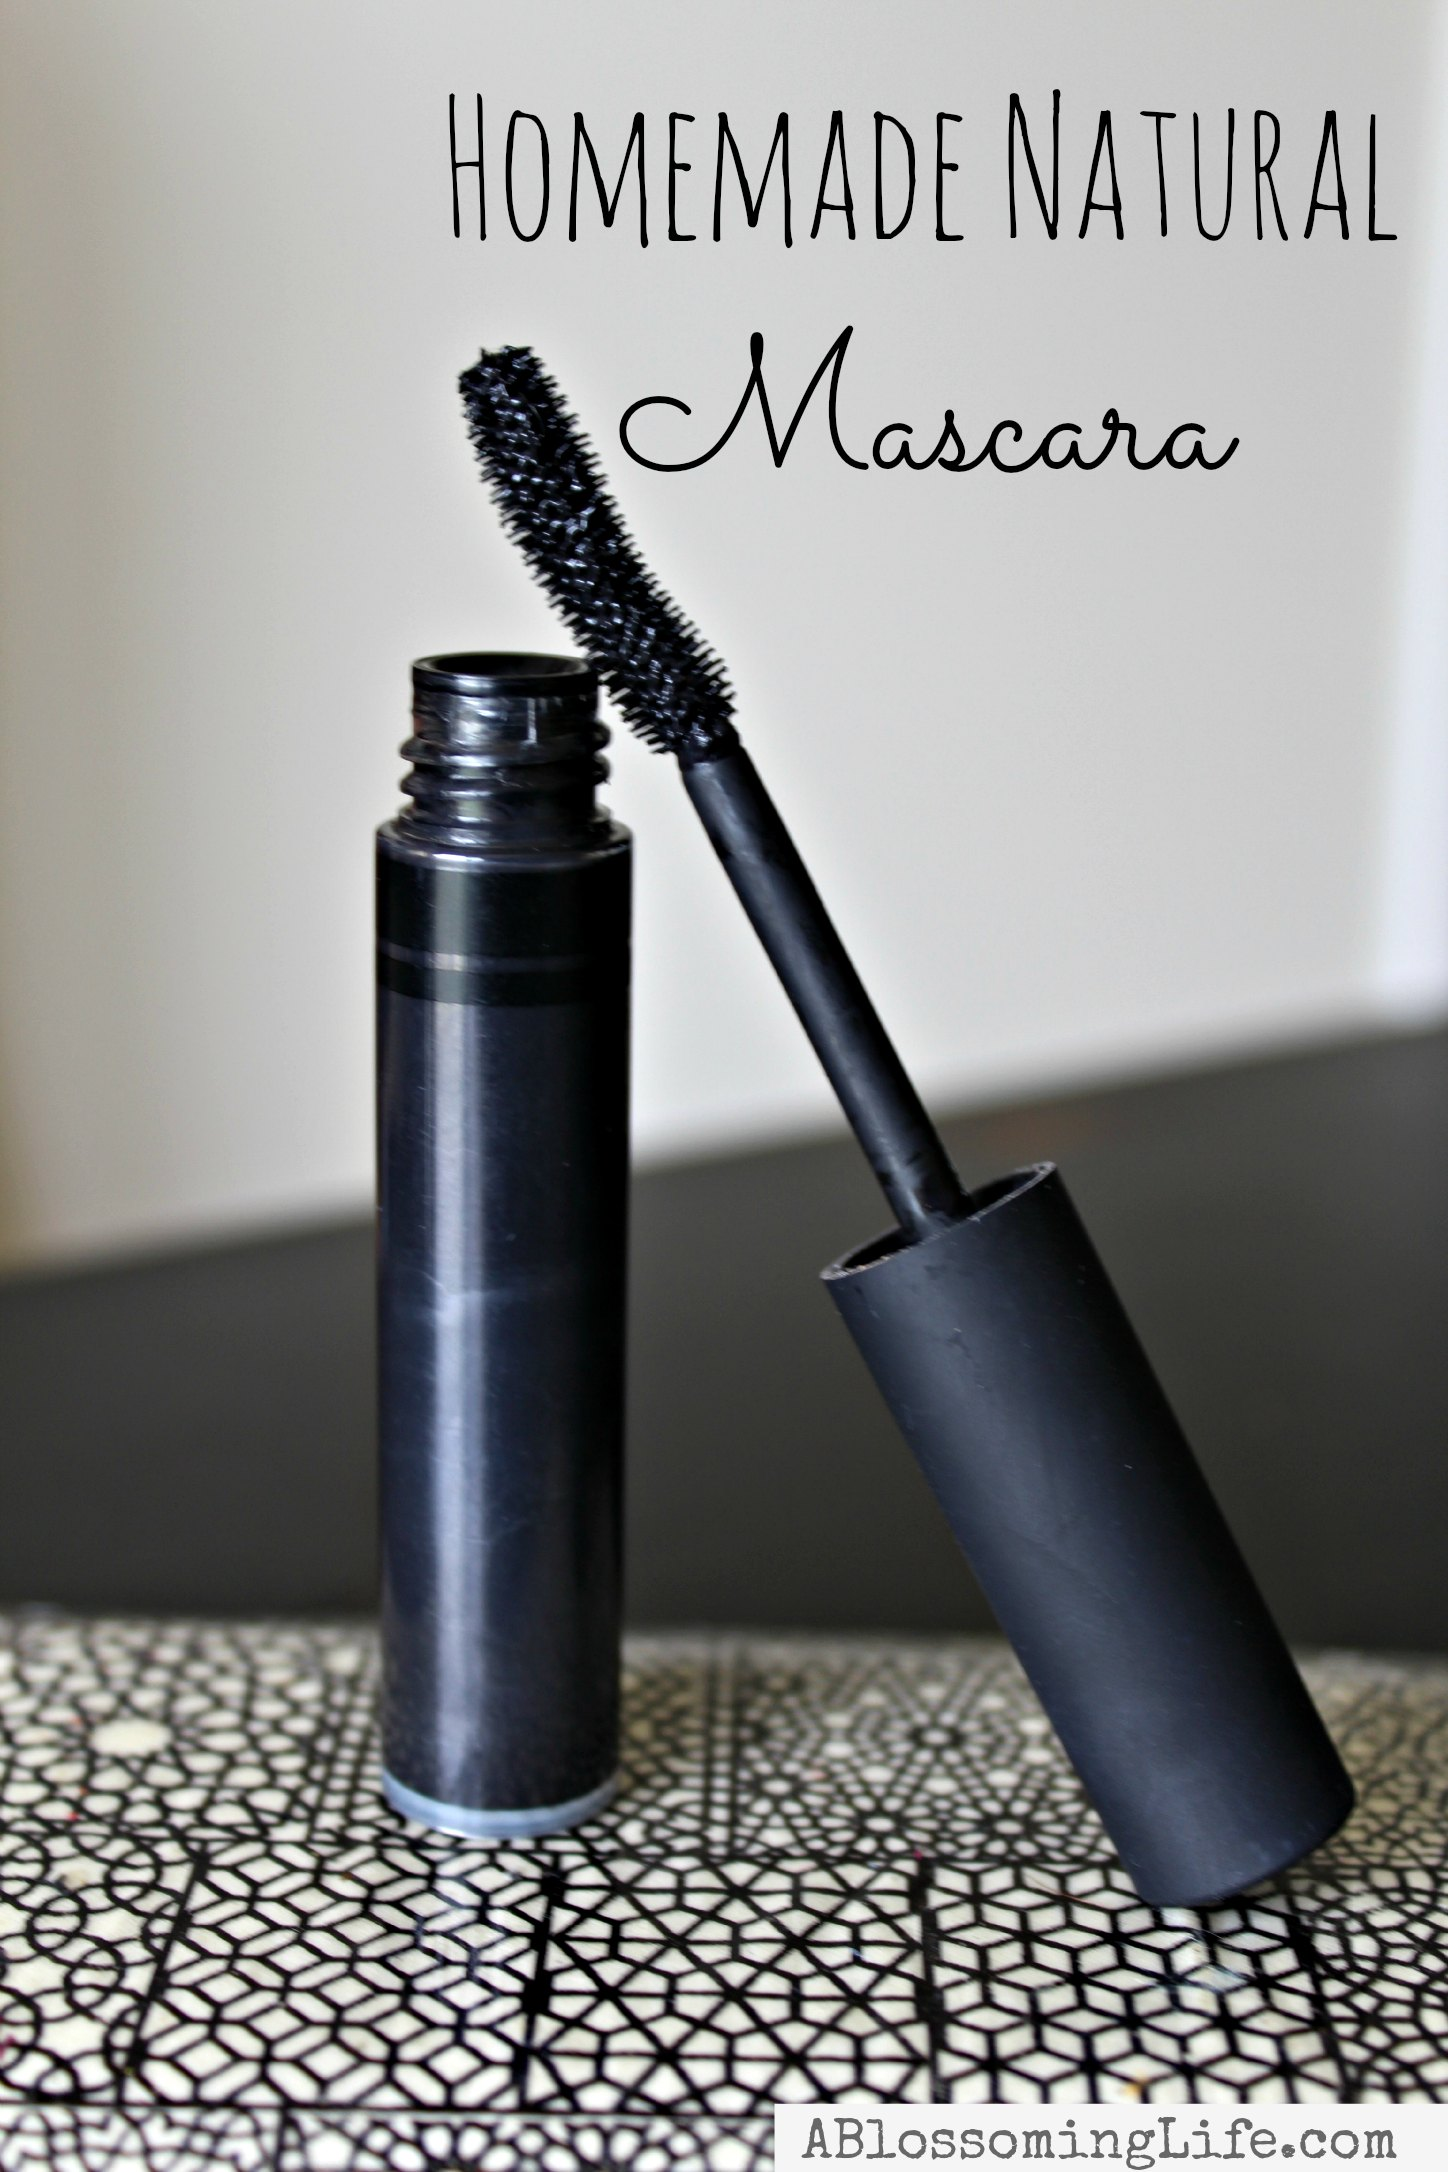 homemade-Natural-Mascara